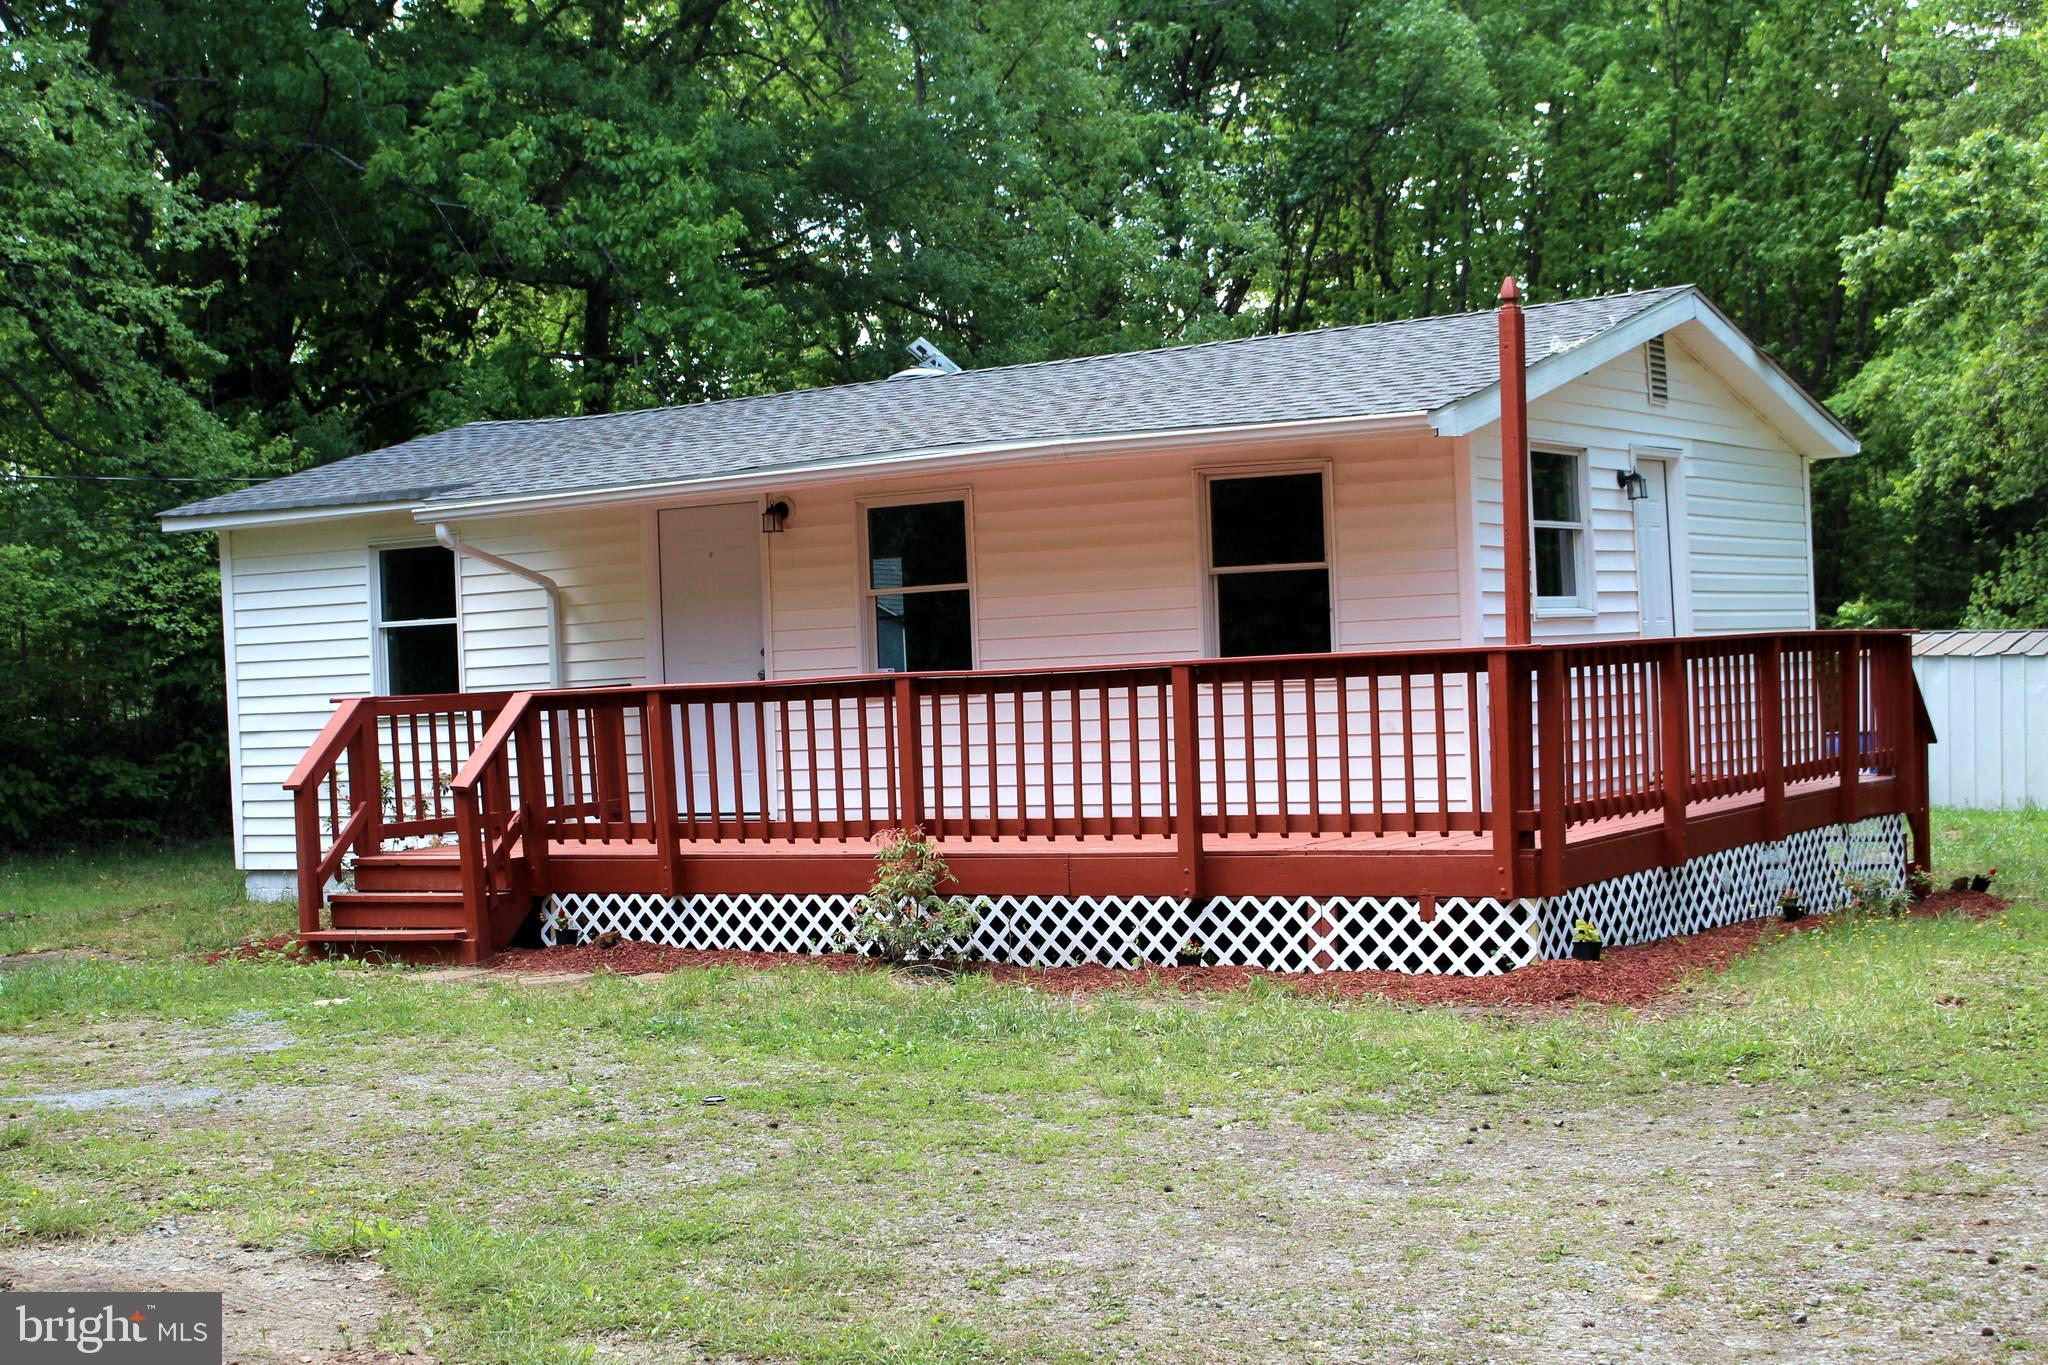 BEAUTIFULL HOUSE REMODELED WITH LOTS OF UPGRADES, 2 BED, 1 FULL BATH WITH NEW  KITCHEN CABINETS, NEW